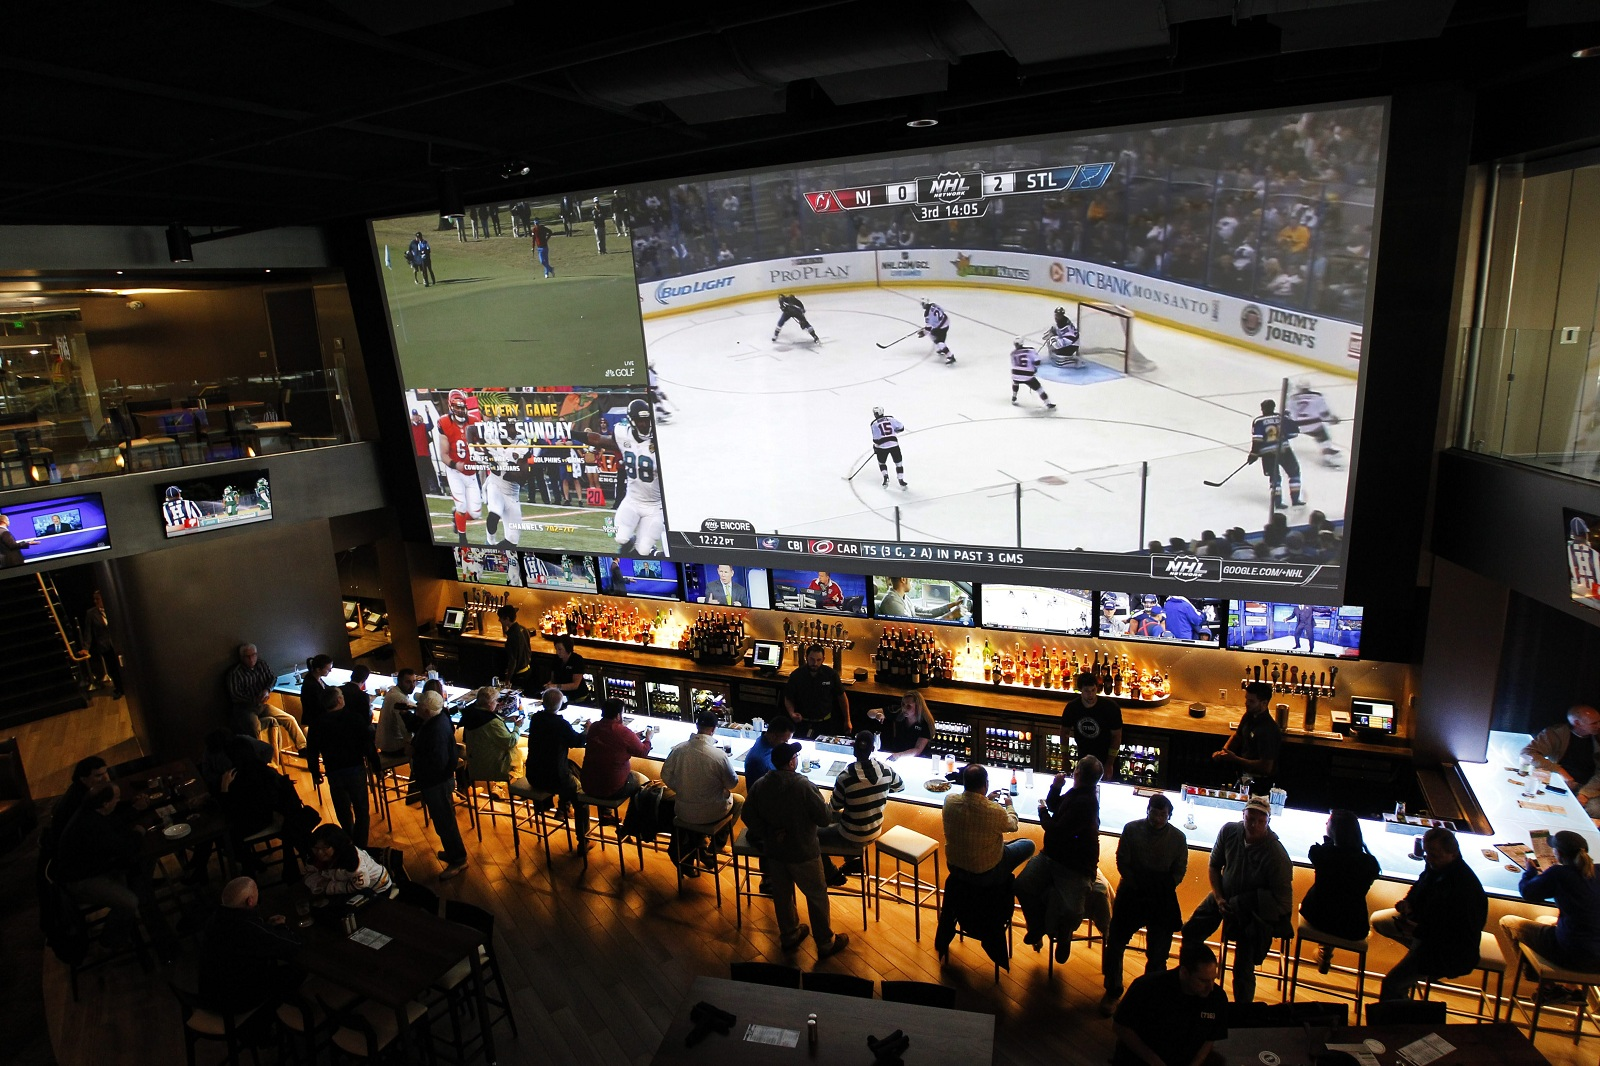 The 38-foot TV screen inside (716) is a major draw for Sabres